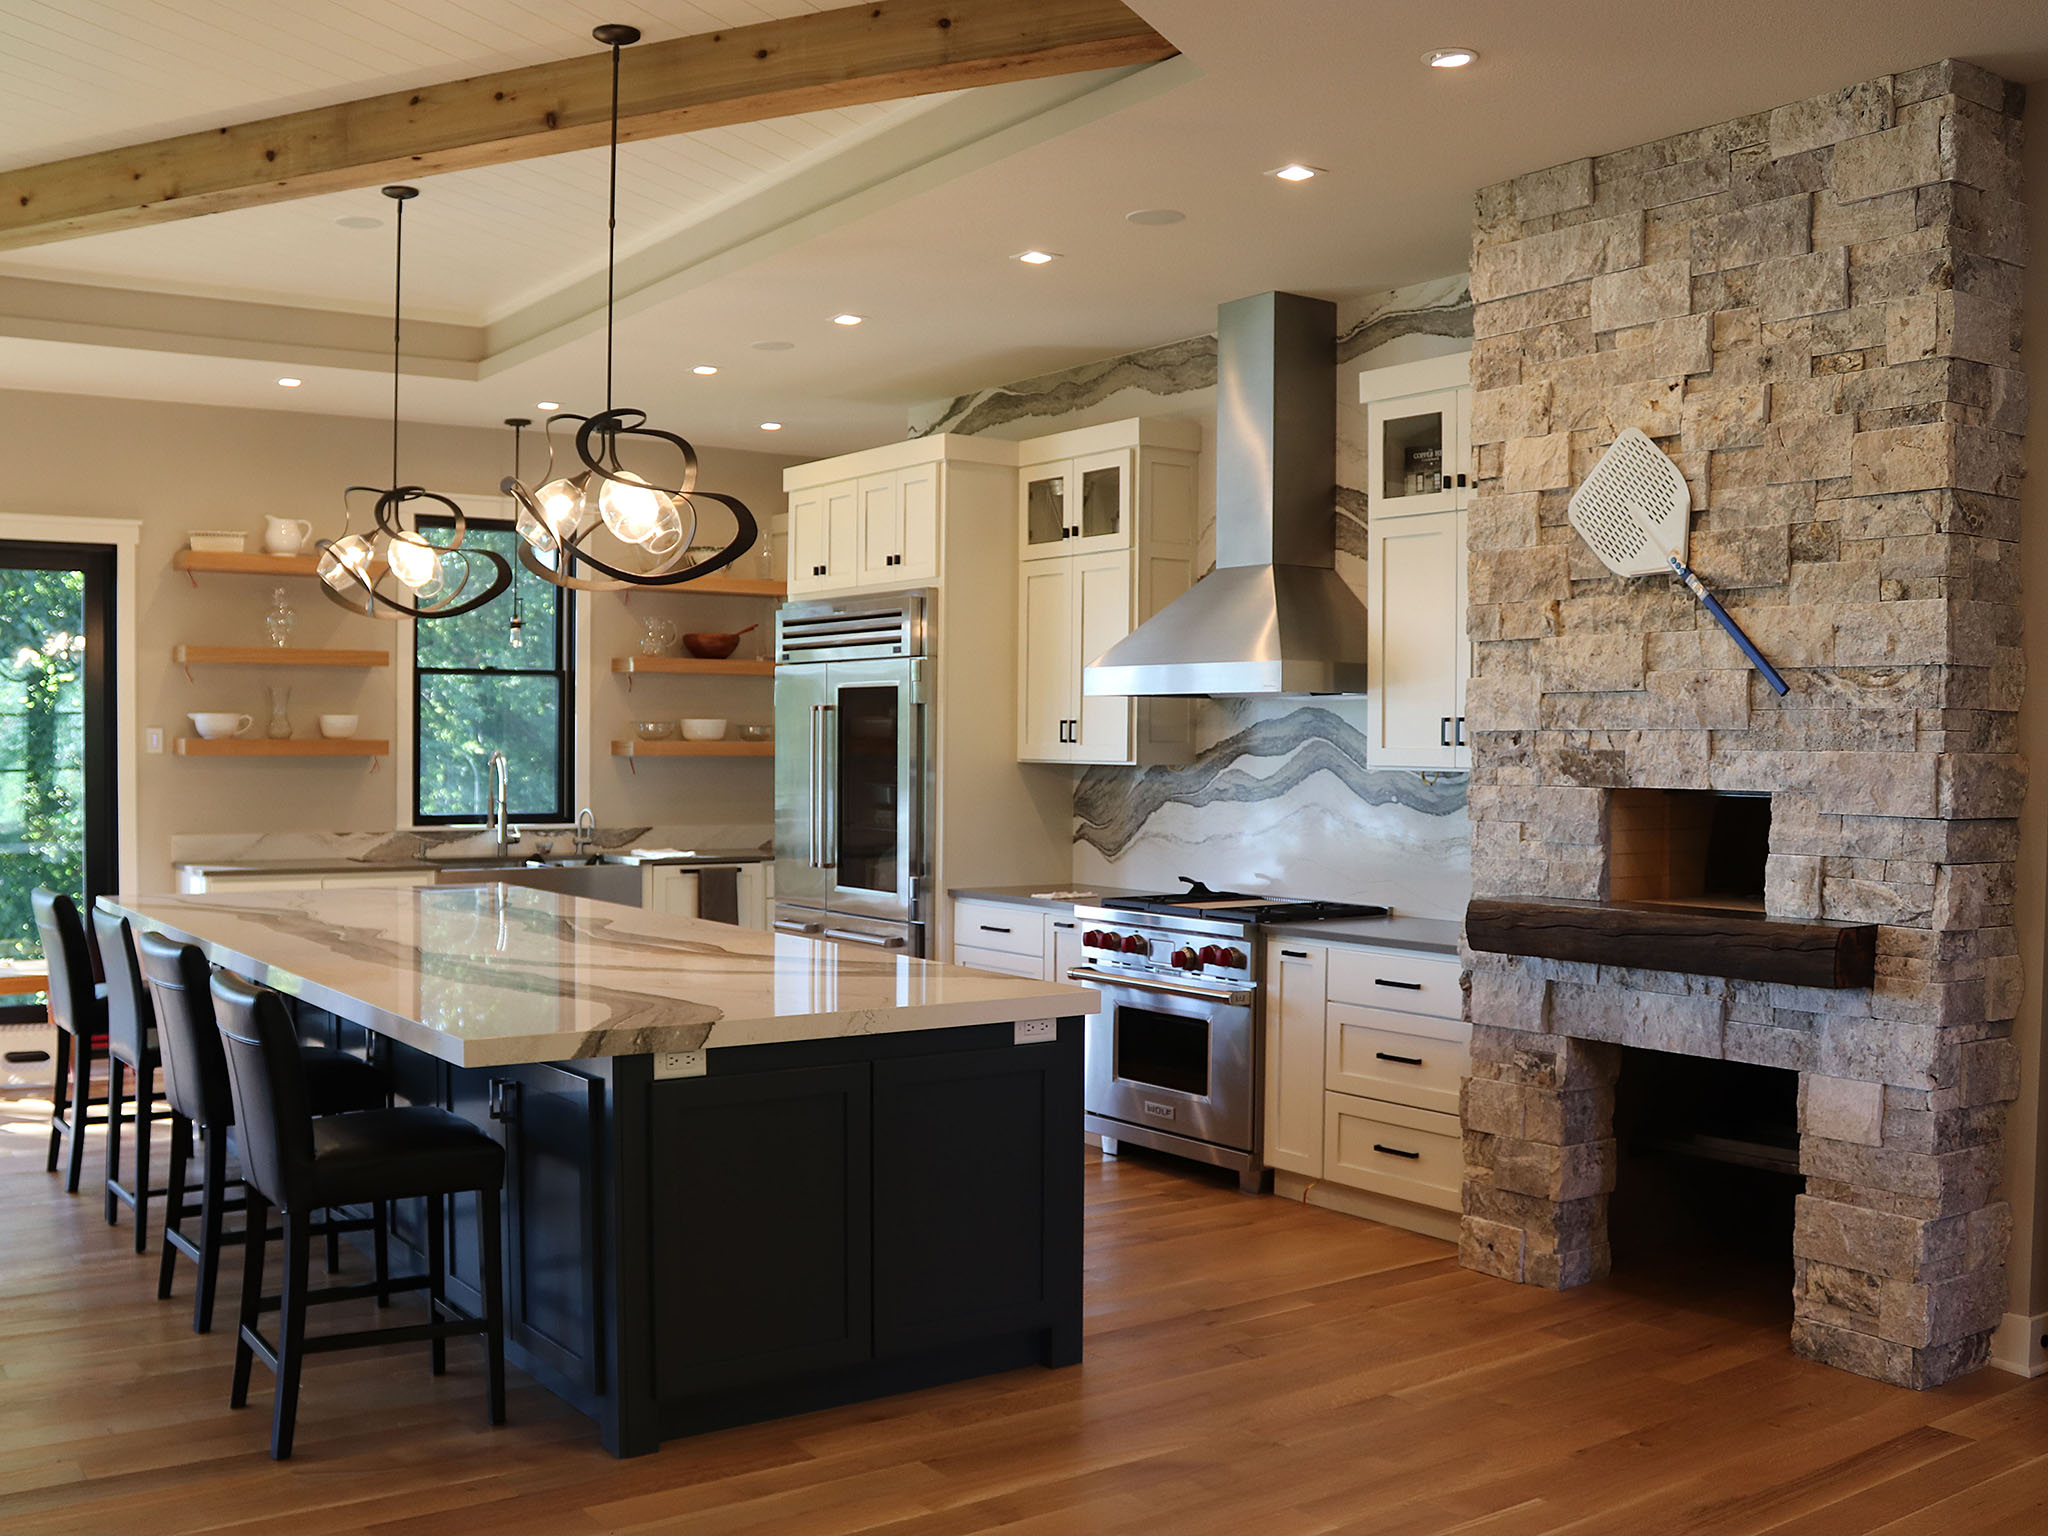 Spacious kitchen with digitally designed Cambria countertop and backsplash, brick oven, white cabinetry and floating shelves